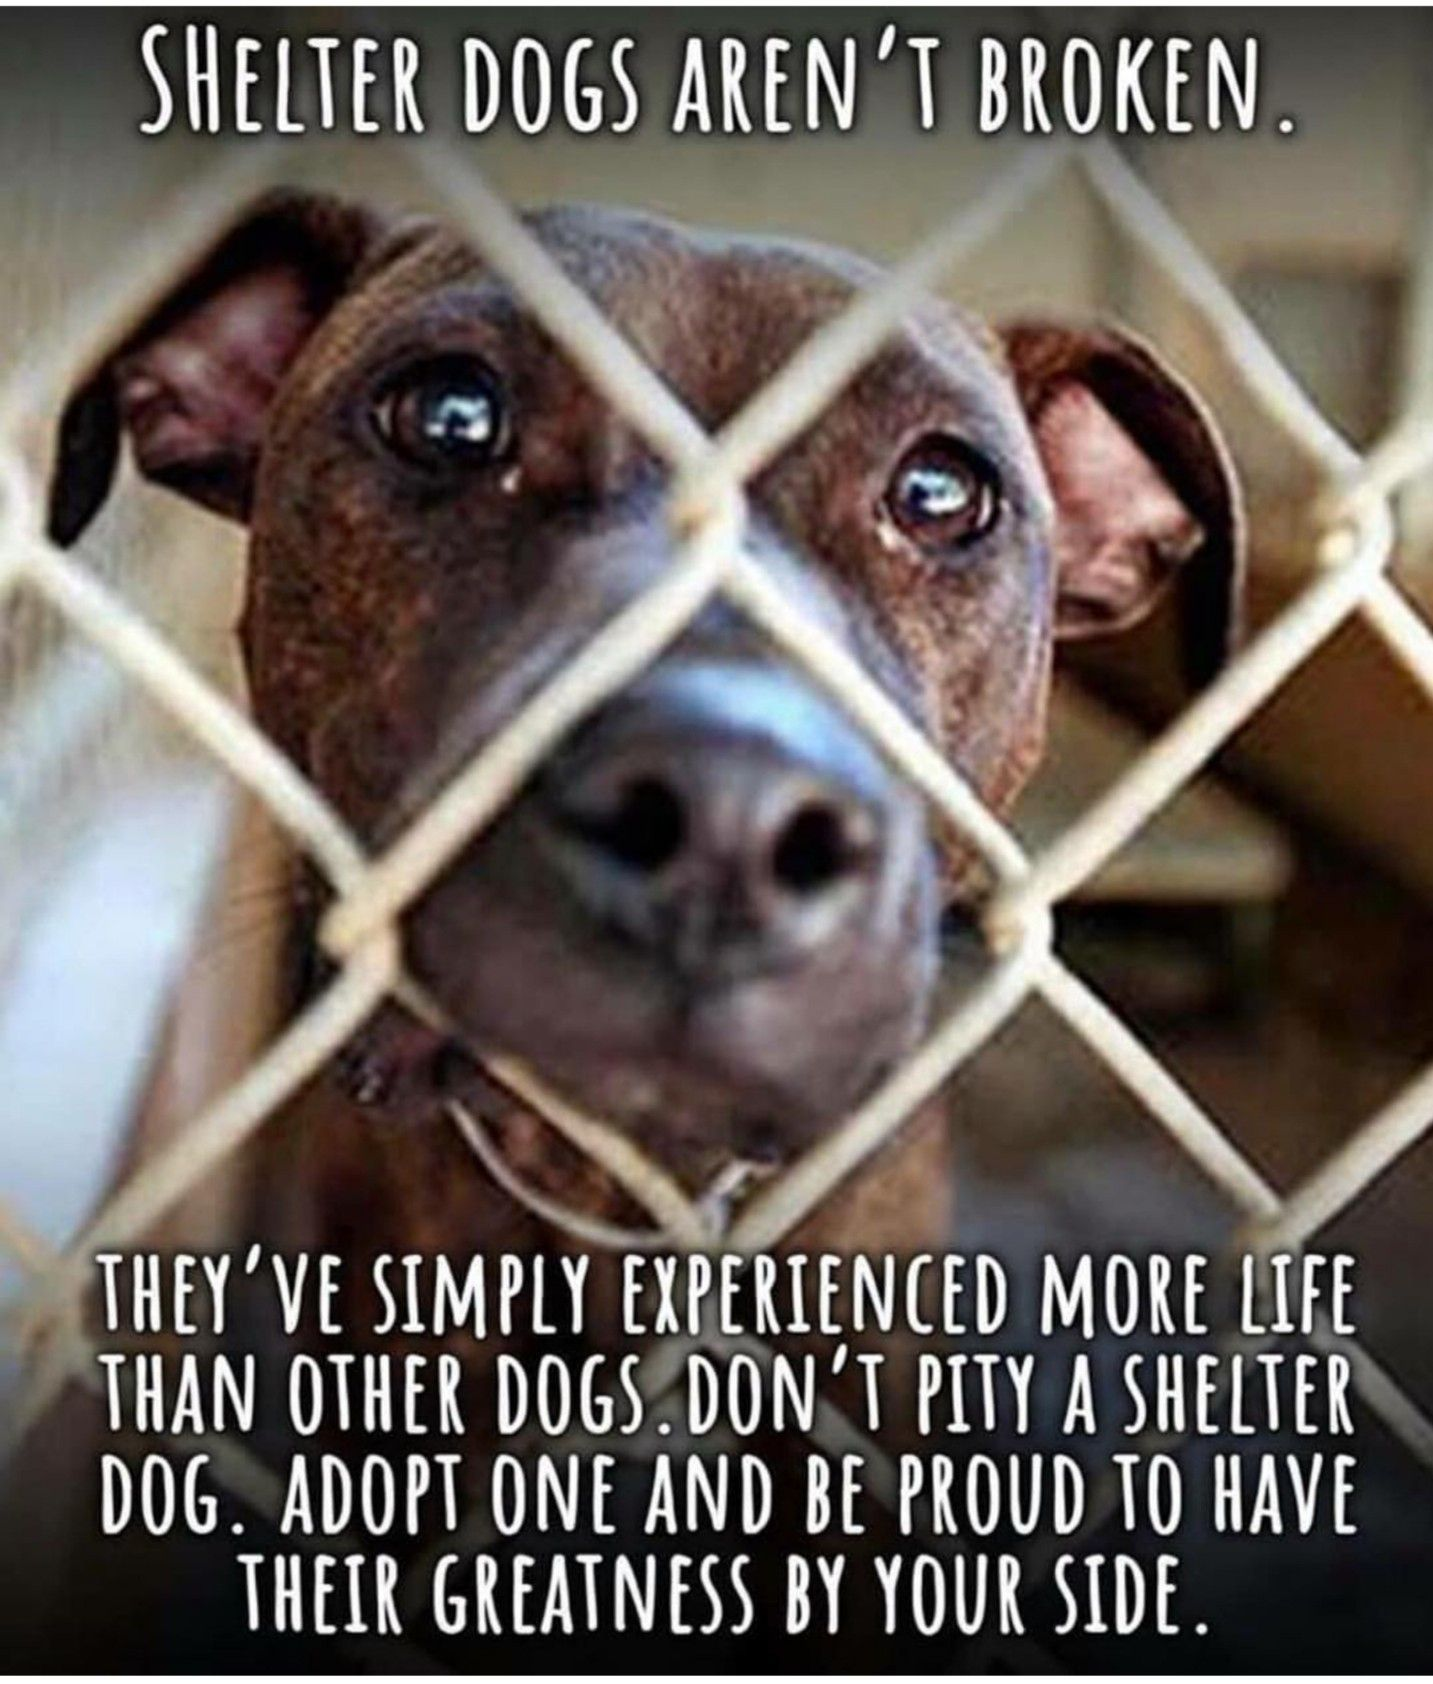 Pin By Shanna Moats Payne On Animal Advocacy Dog Adoption Dogs Shelter Dogs